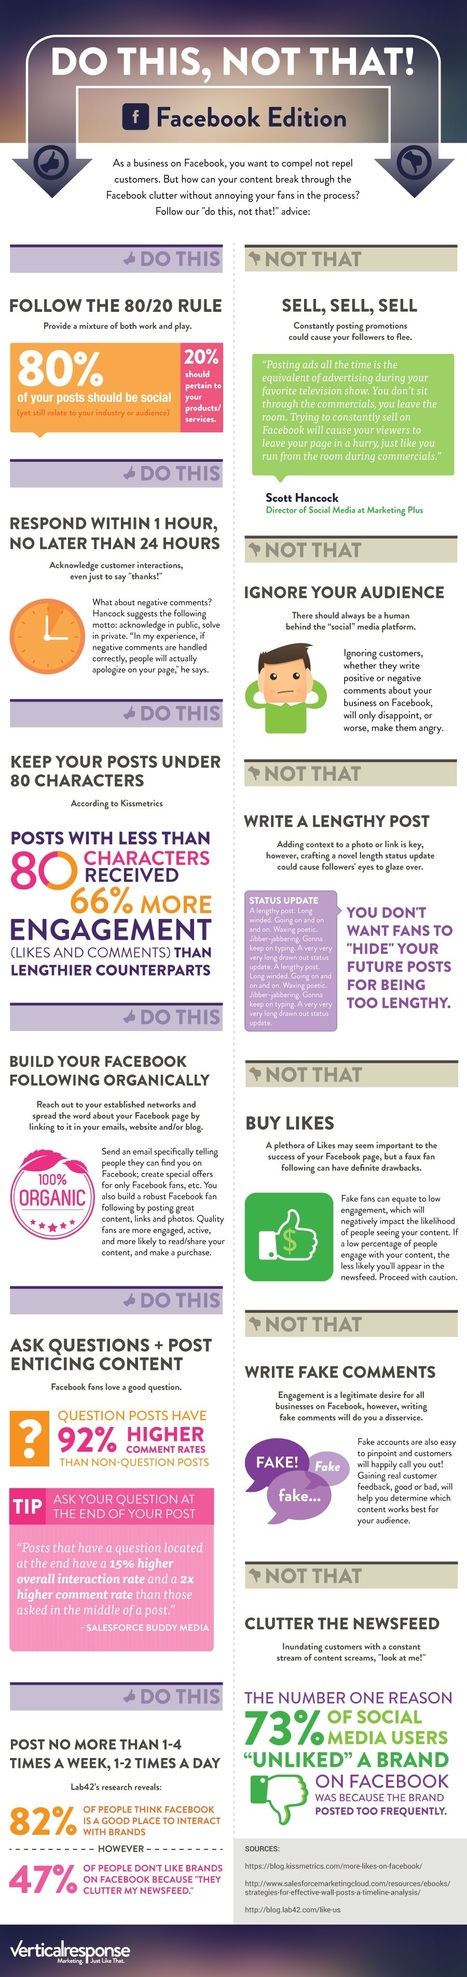 The Dos and Don'ts of Facebook Marketing | Communications and Social Media | Scoop.it